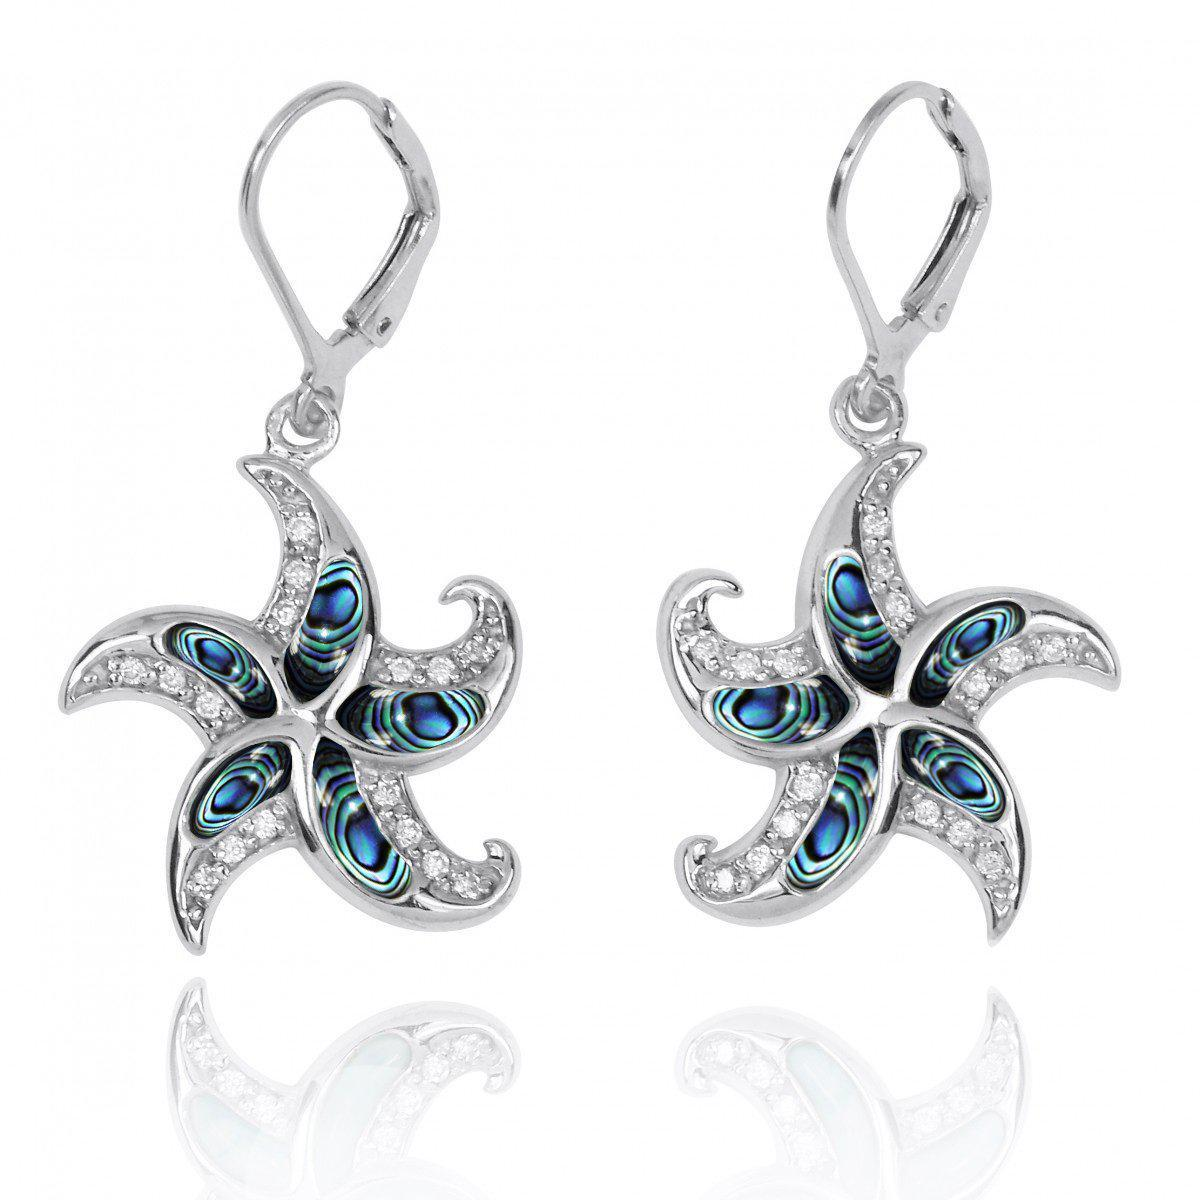 Starfish Lever Back Earrings with Abalone Shell and White CZ